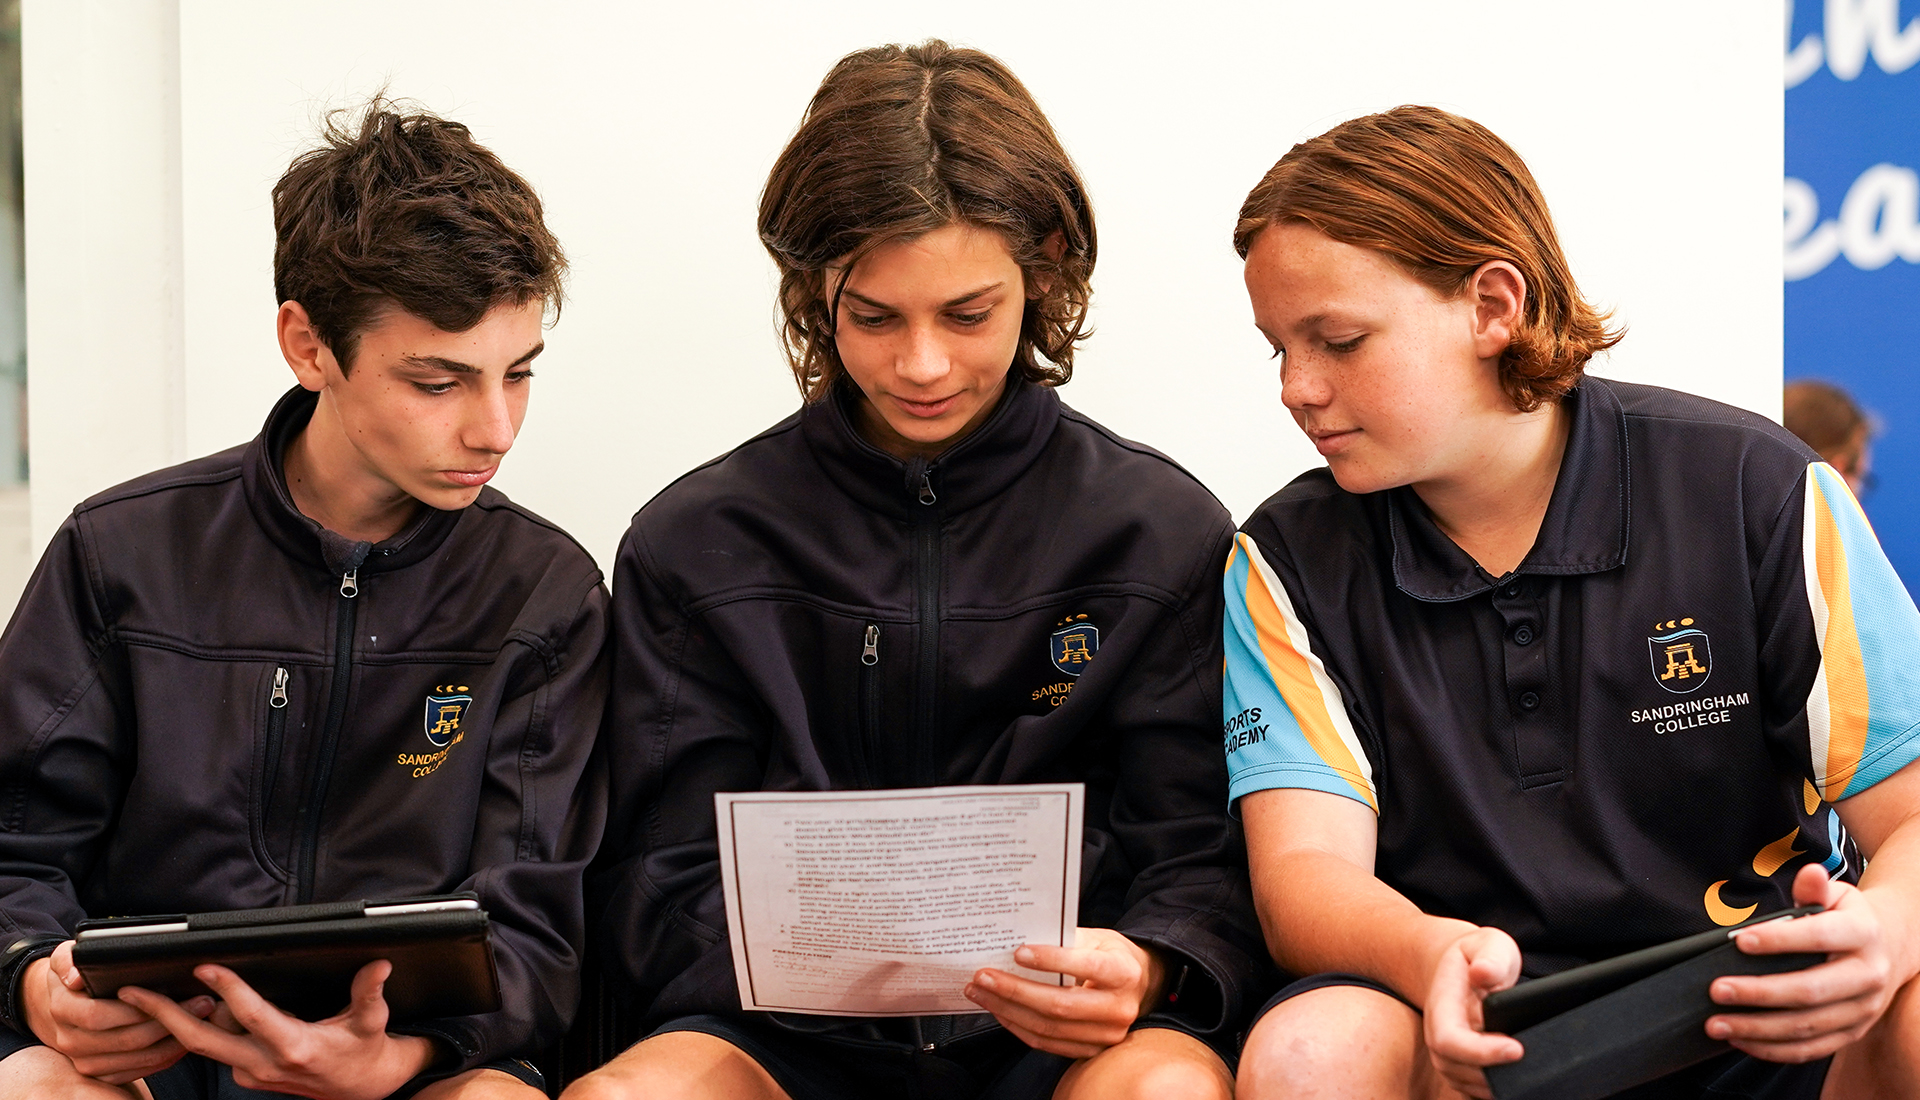 Sandringham Secondary College Year 9 Horizons Program